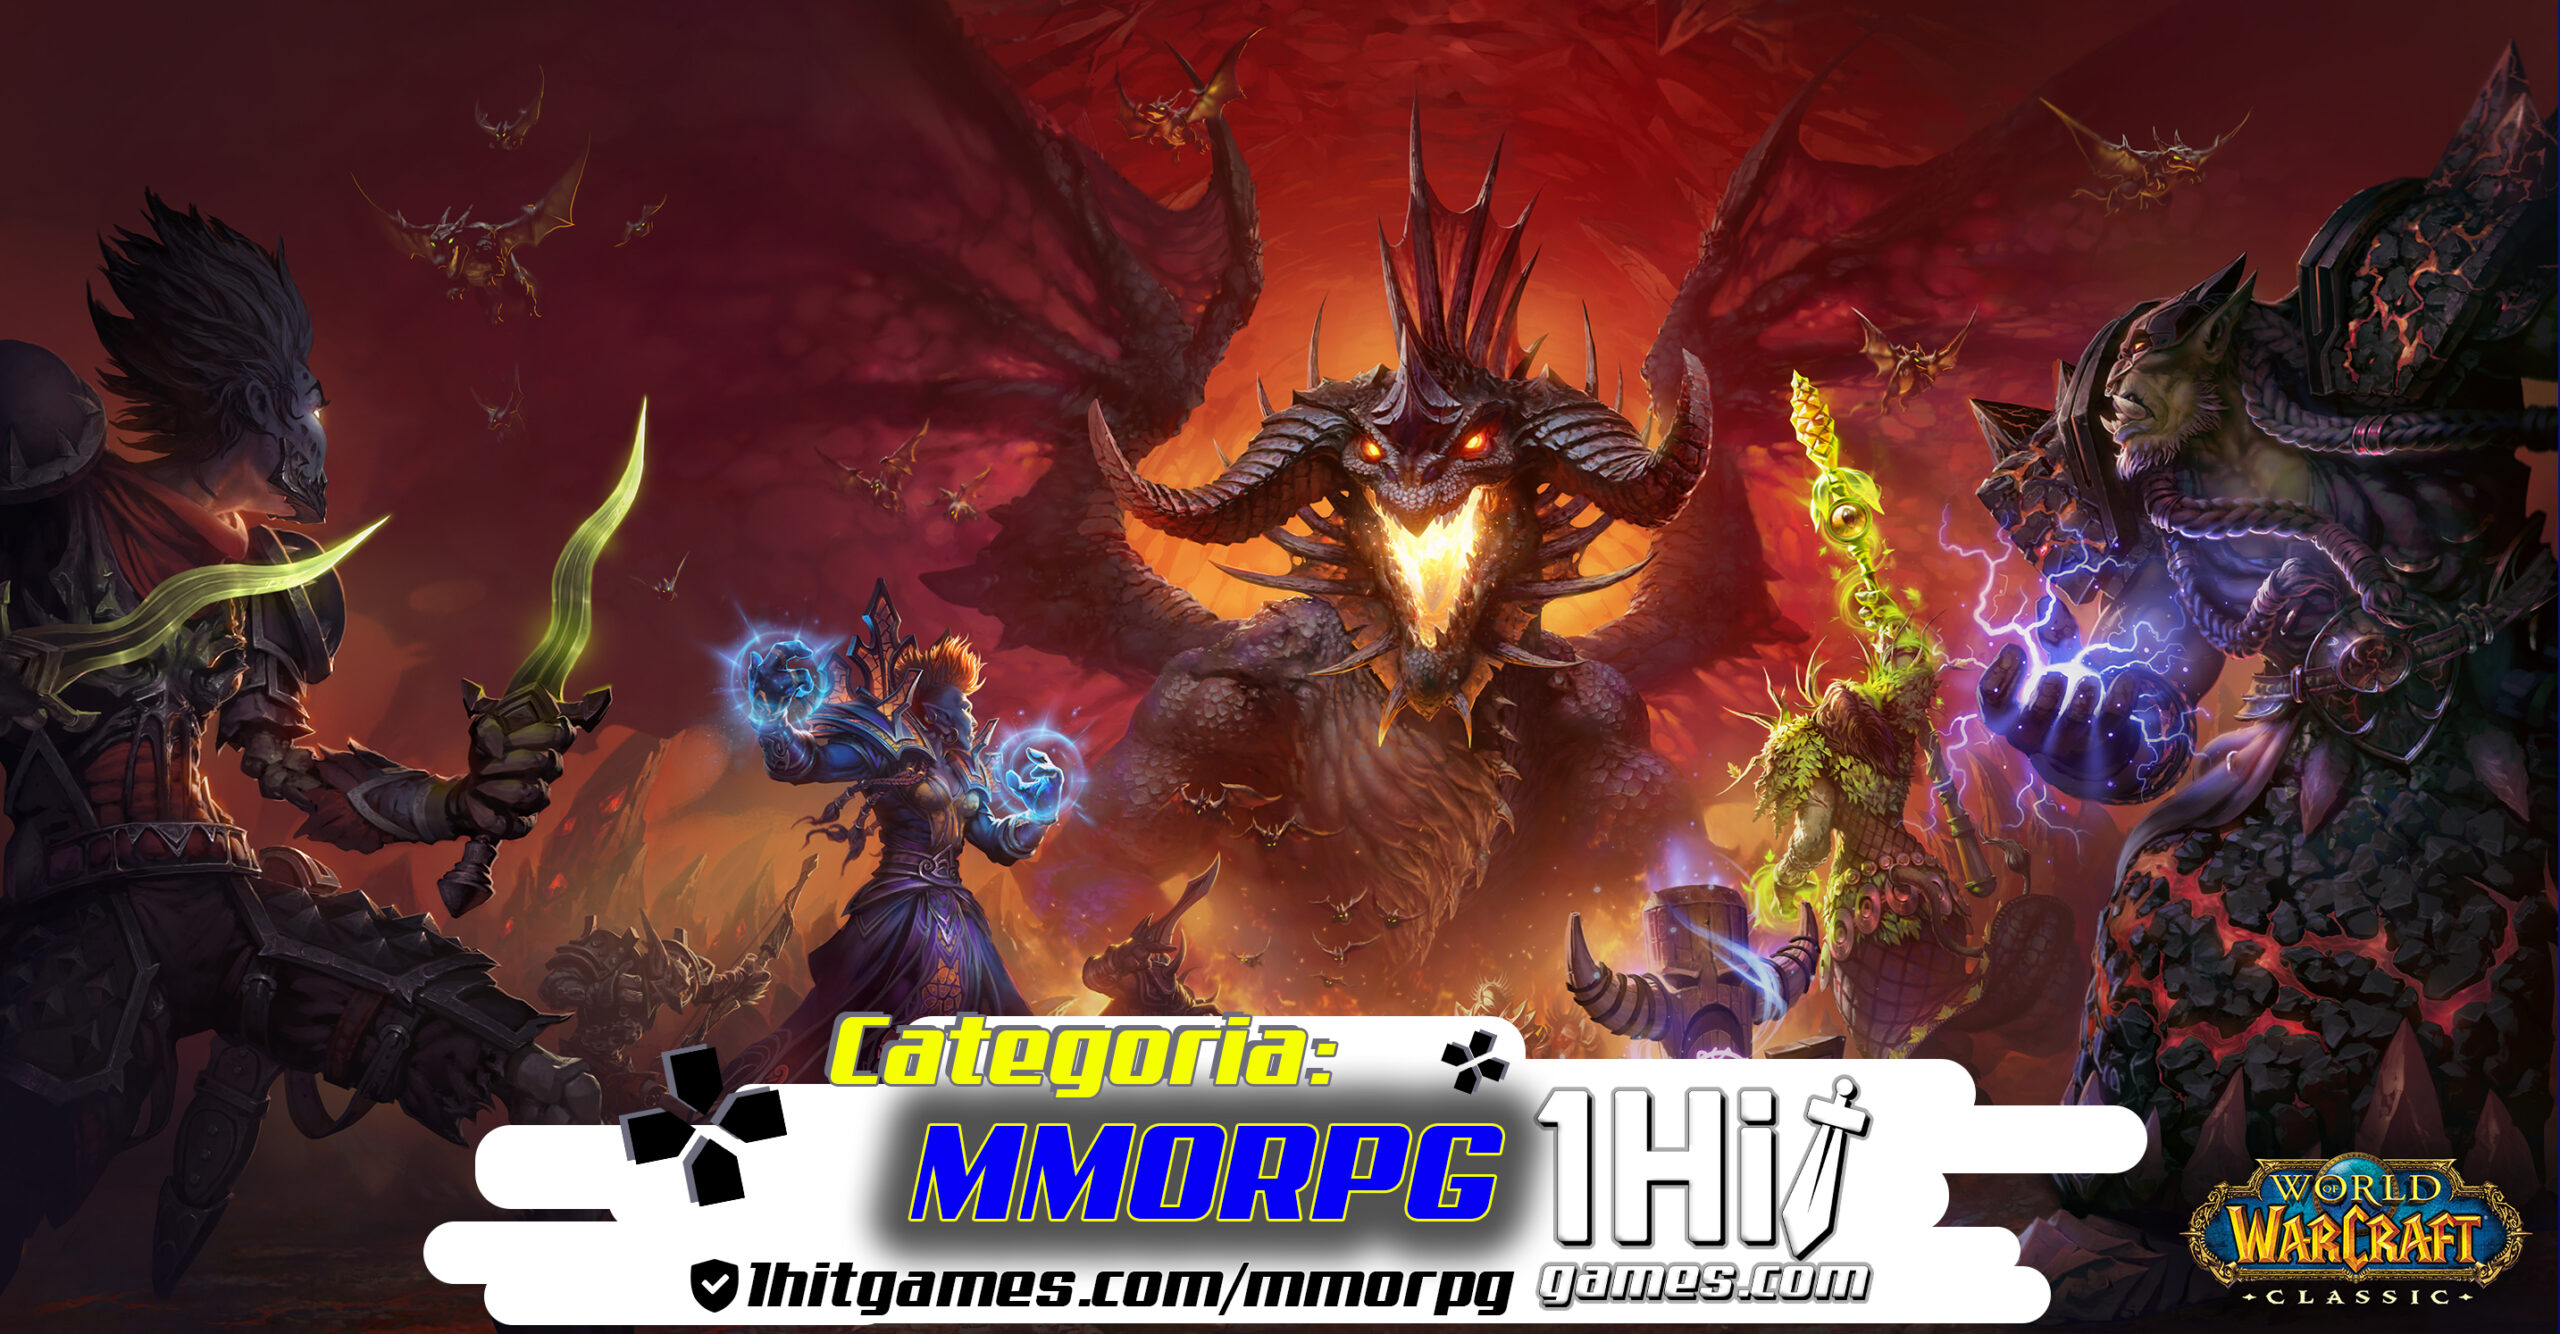 mmorpg games 1hitgames jogos eletronicos categorias 1hit